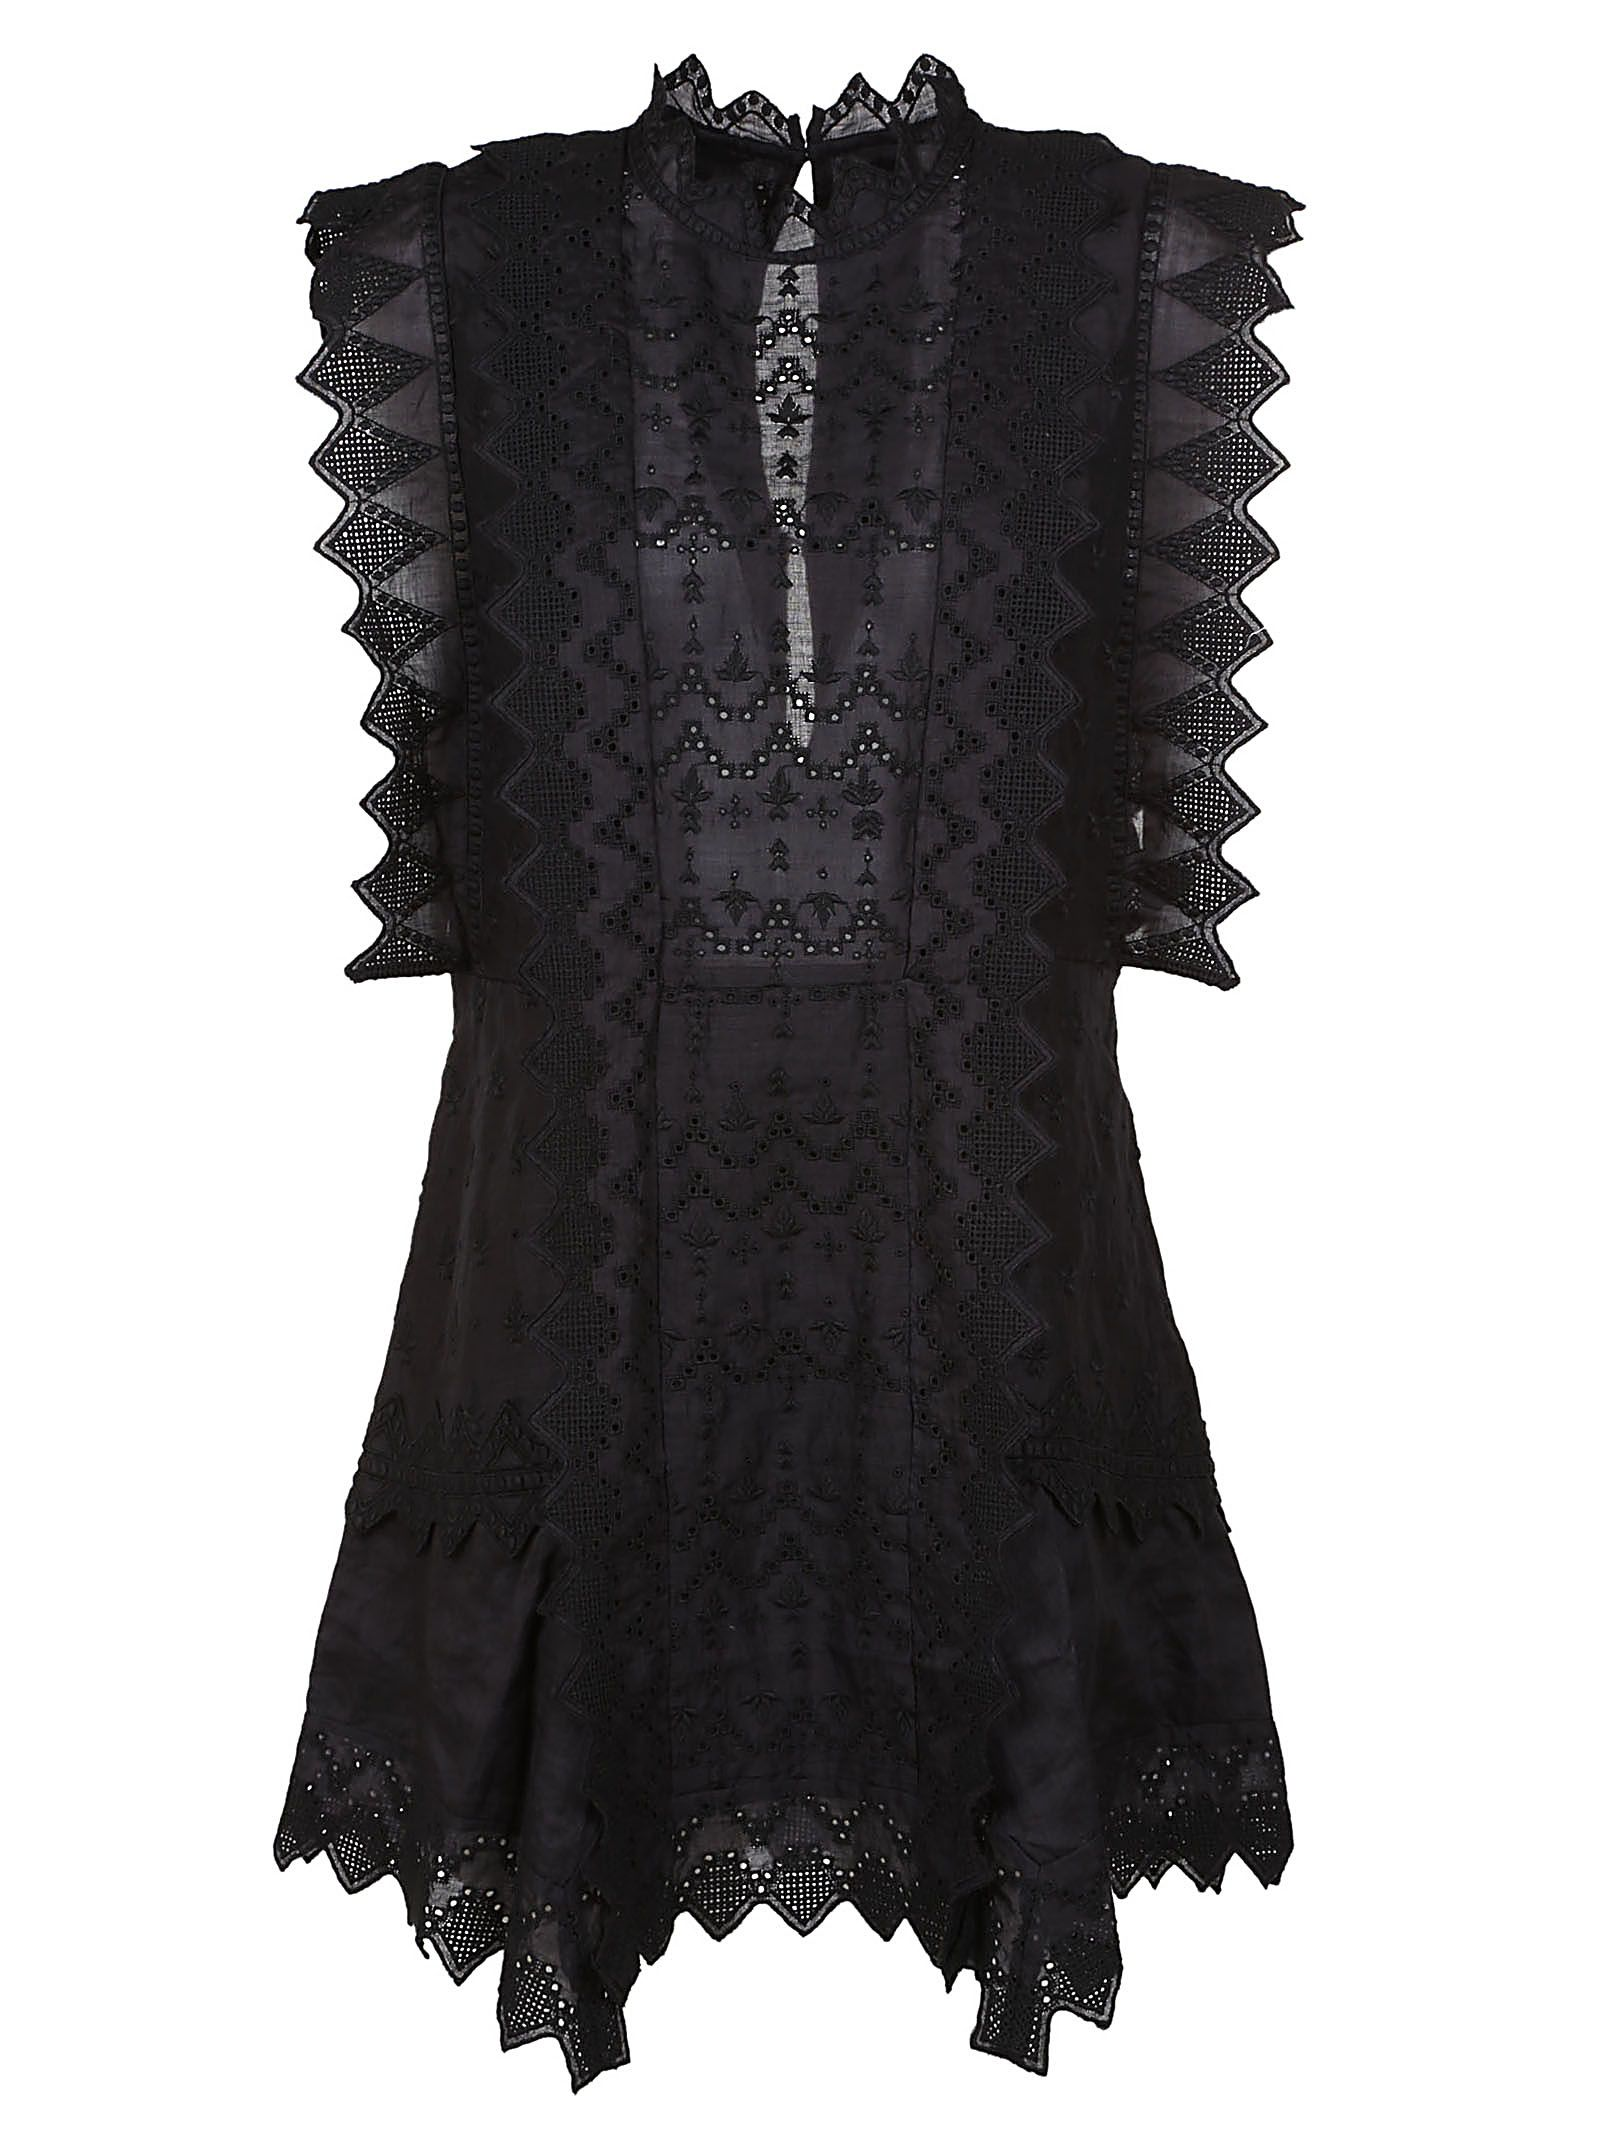 Isabel Marant Broderie Anglaise Dress